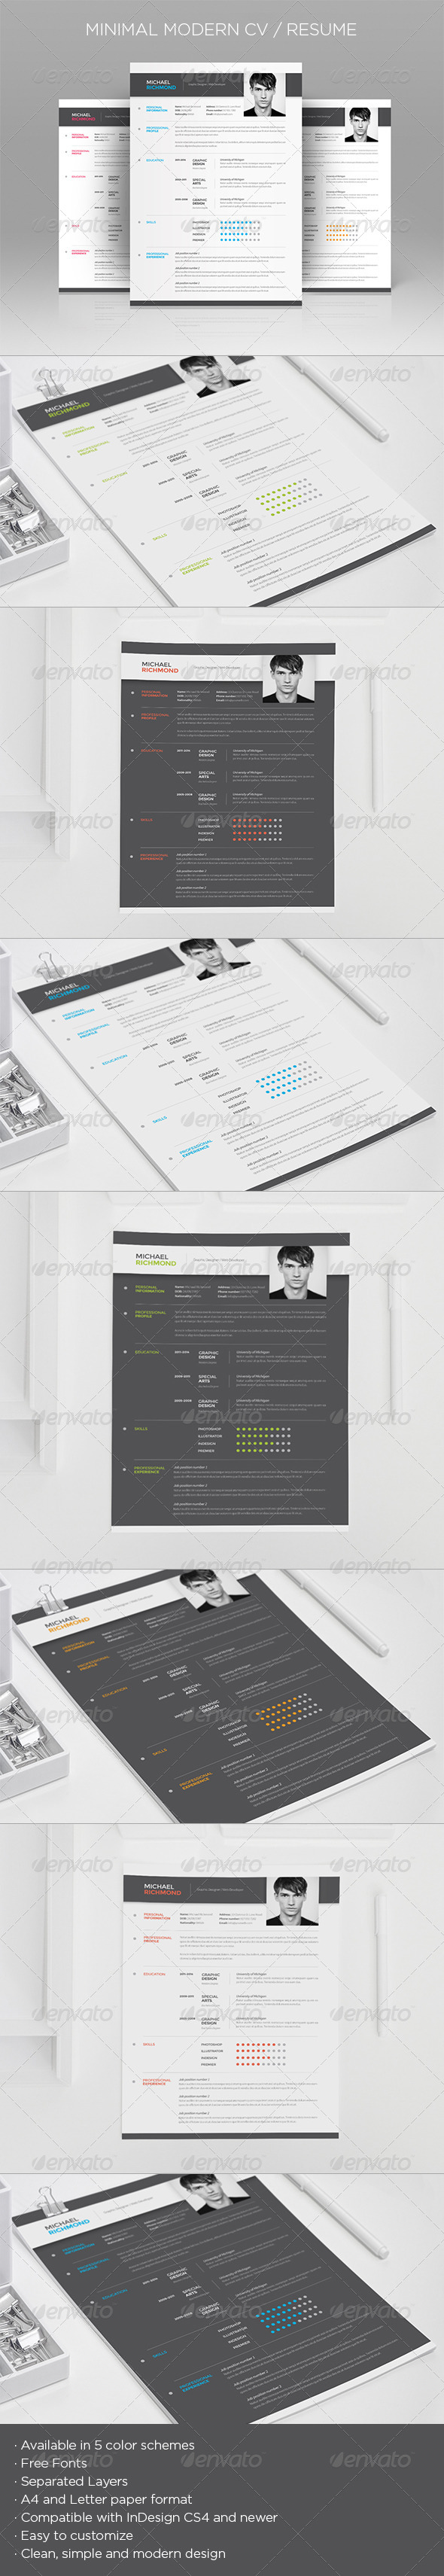 InDesign Simple Design Templates from GraphicRiver (Page 3)